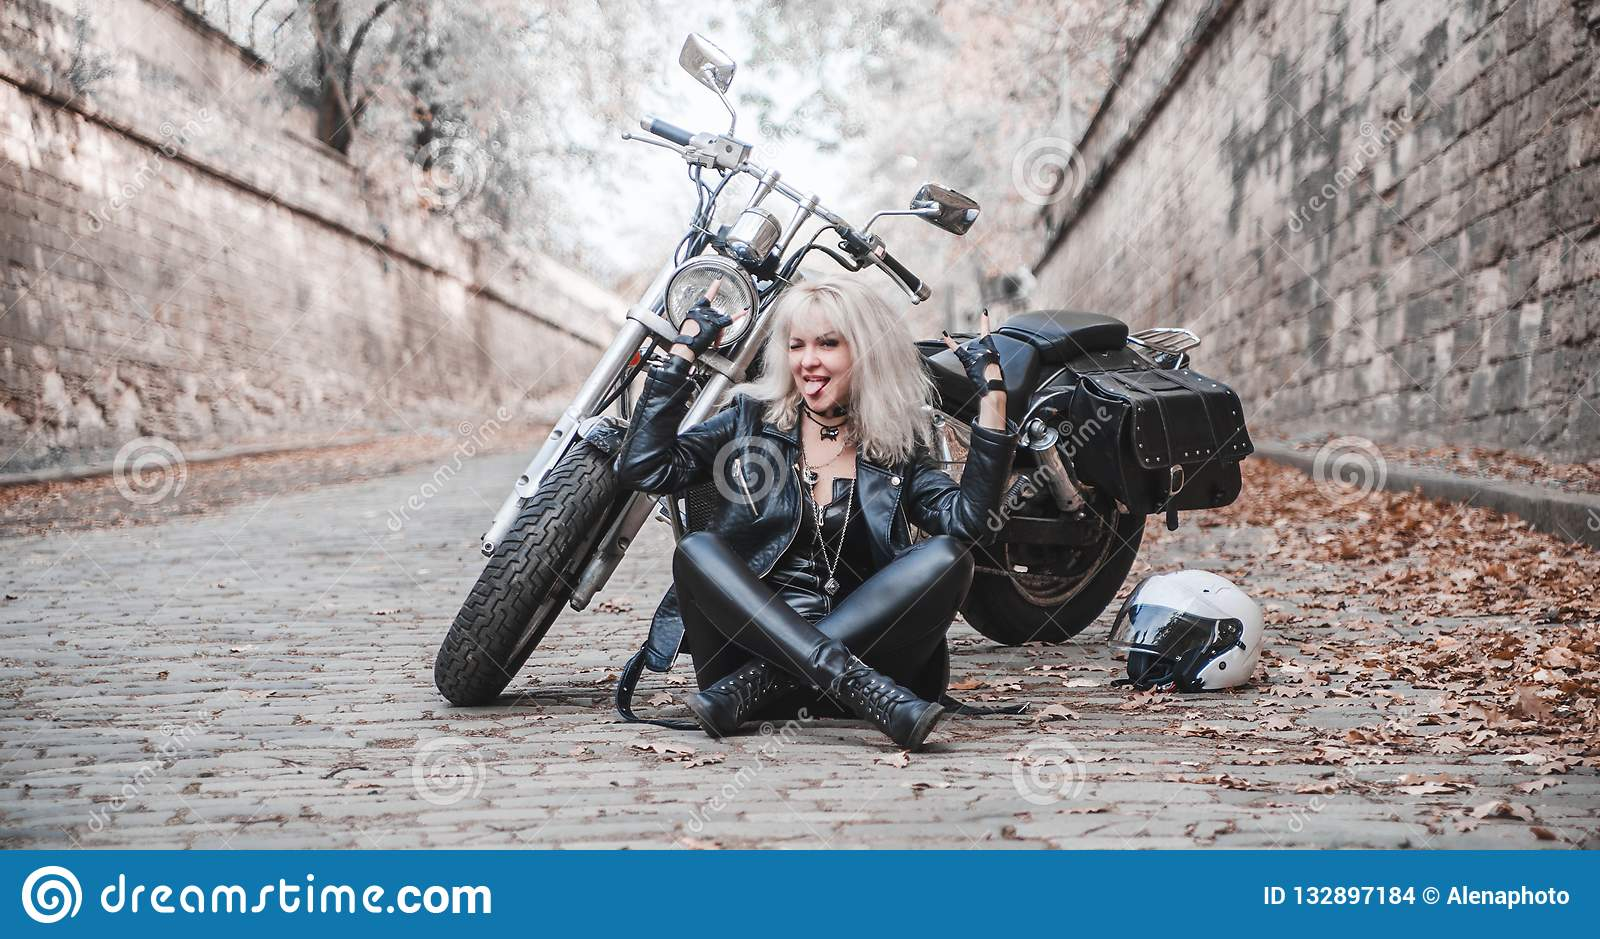 3a8253e6b Beautiful Biker Woman Outdoor With Motorcycle. Stock Photo - Image ...